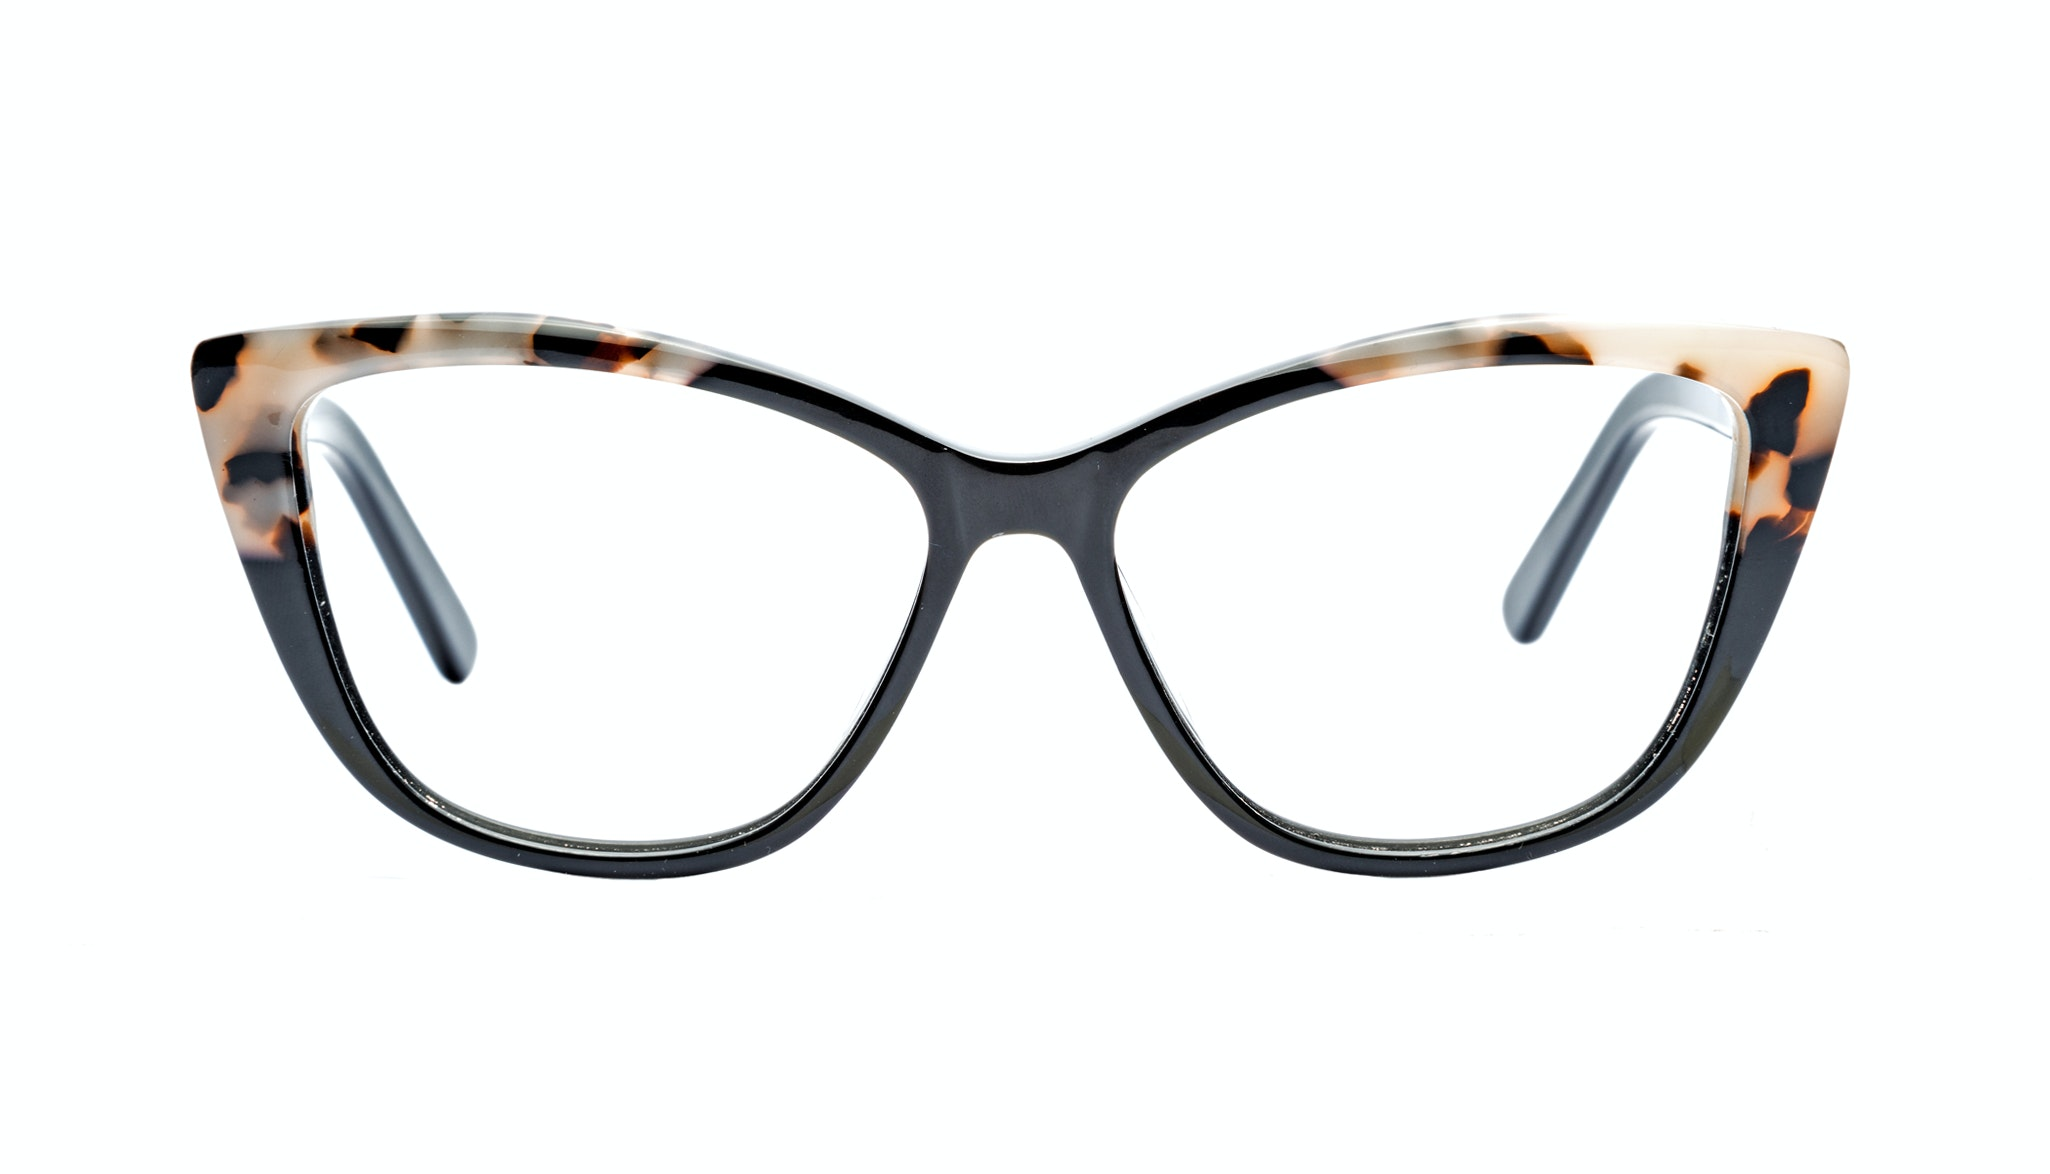 Affordable Fashion Glasses Cat Eye Daring Cateye Eyeglasses Women Dolled Up Ebony Granite